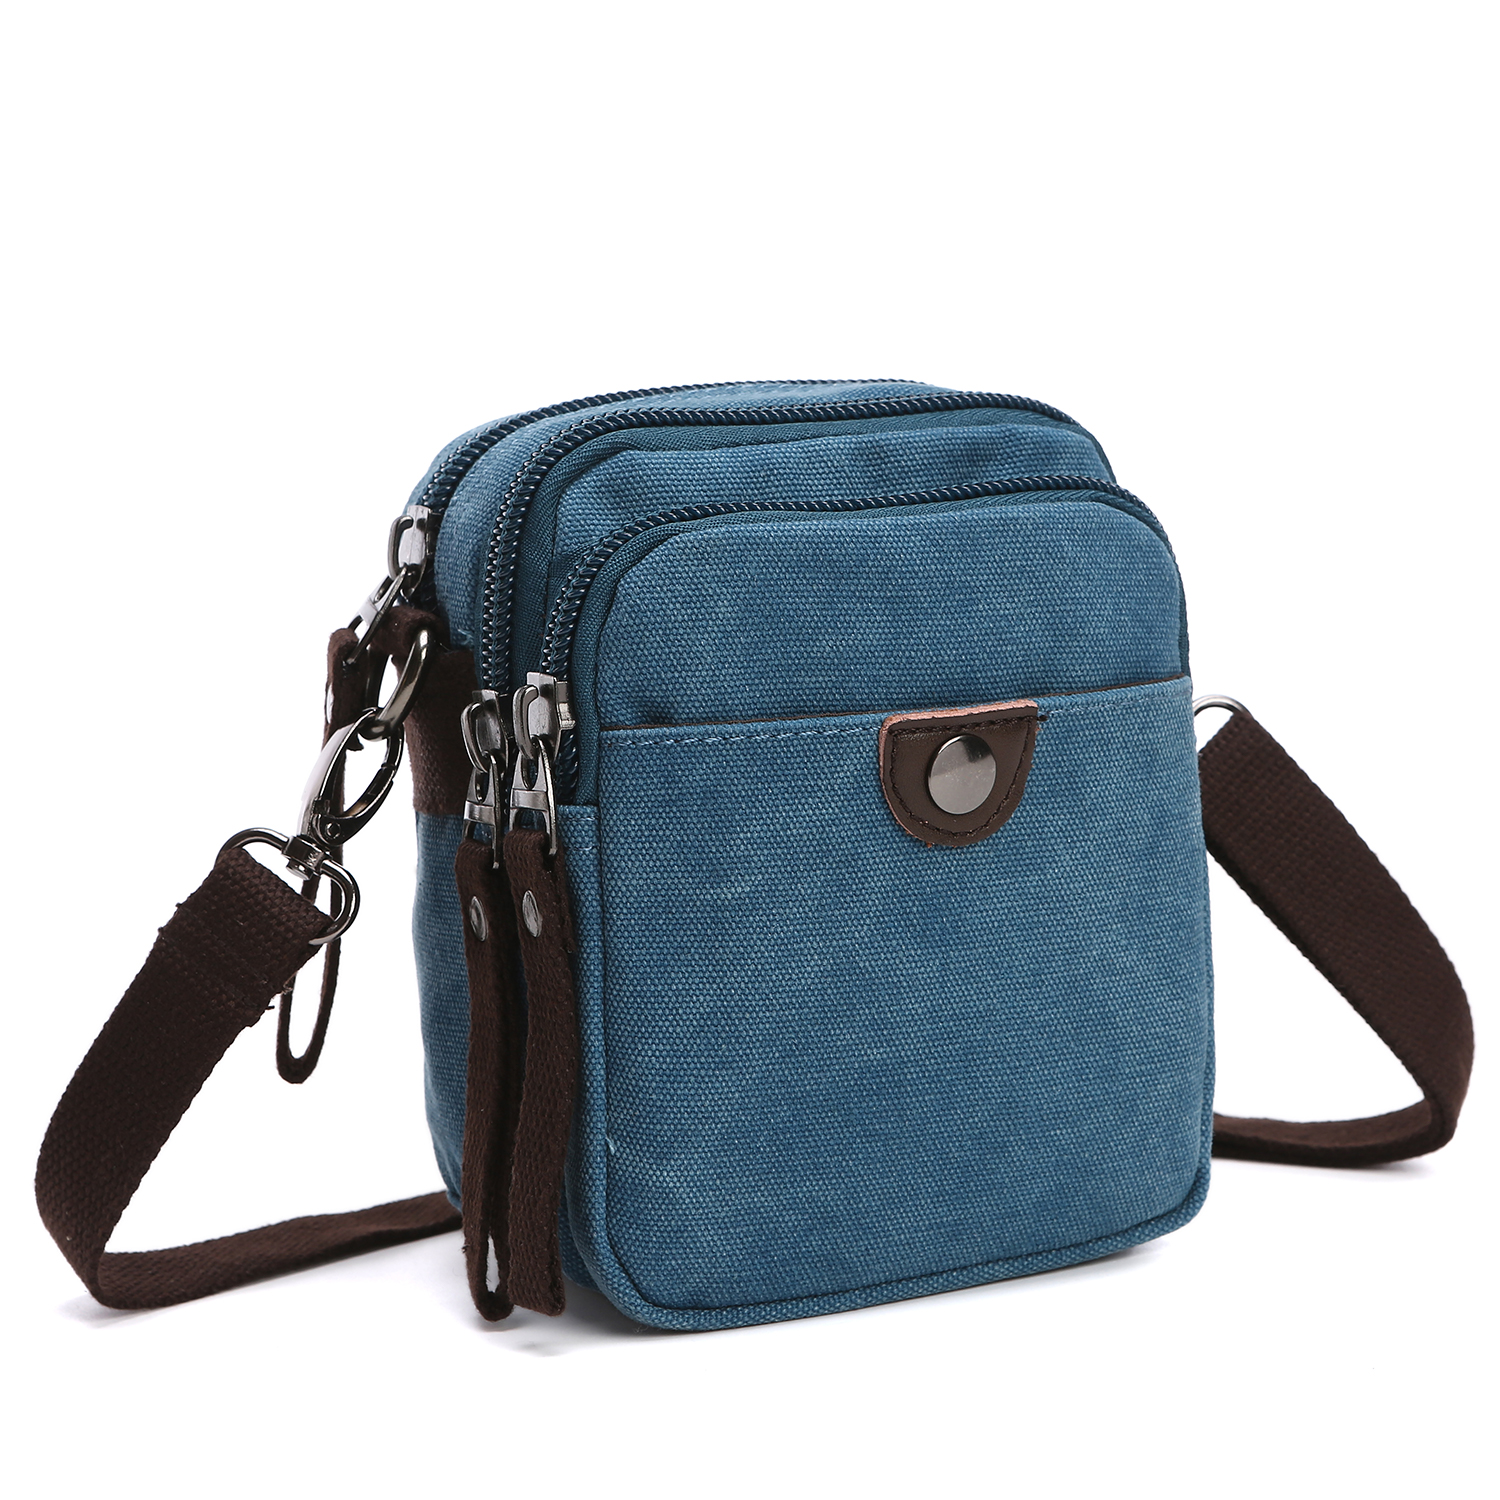 Dasein Vintage Unisex Canvas Messenger Bag/Cross body